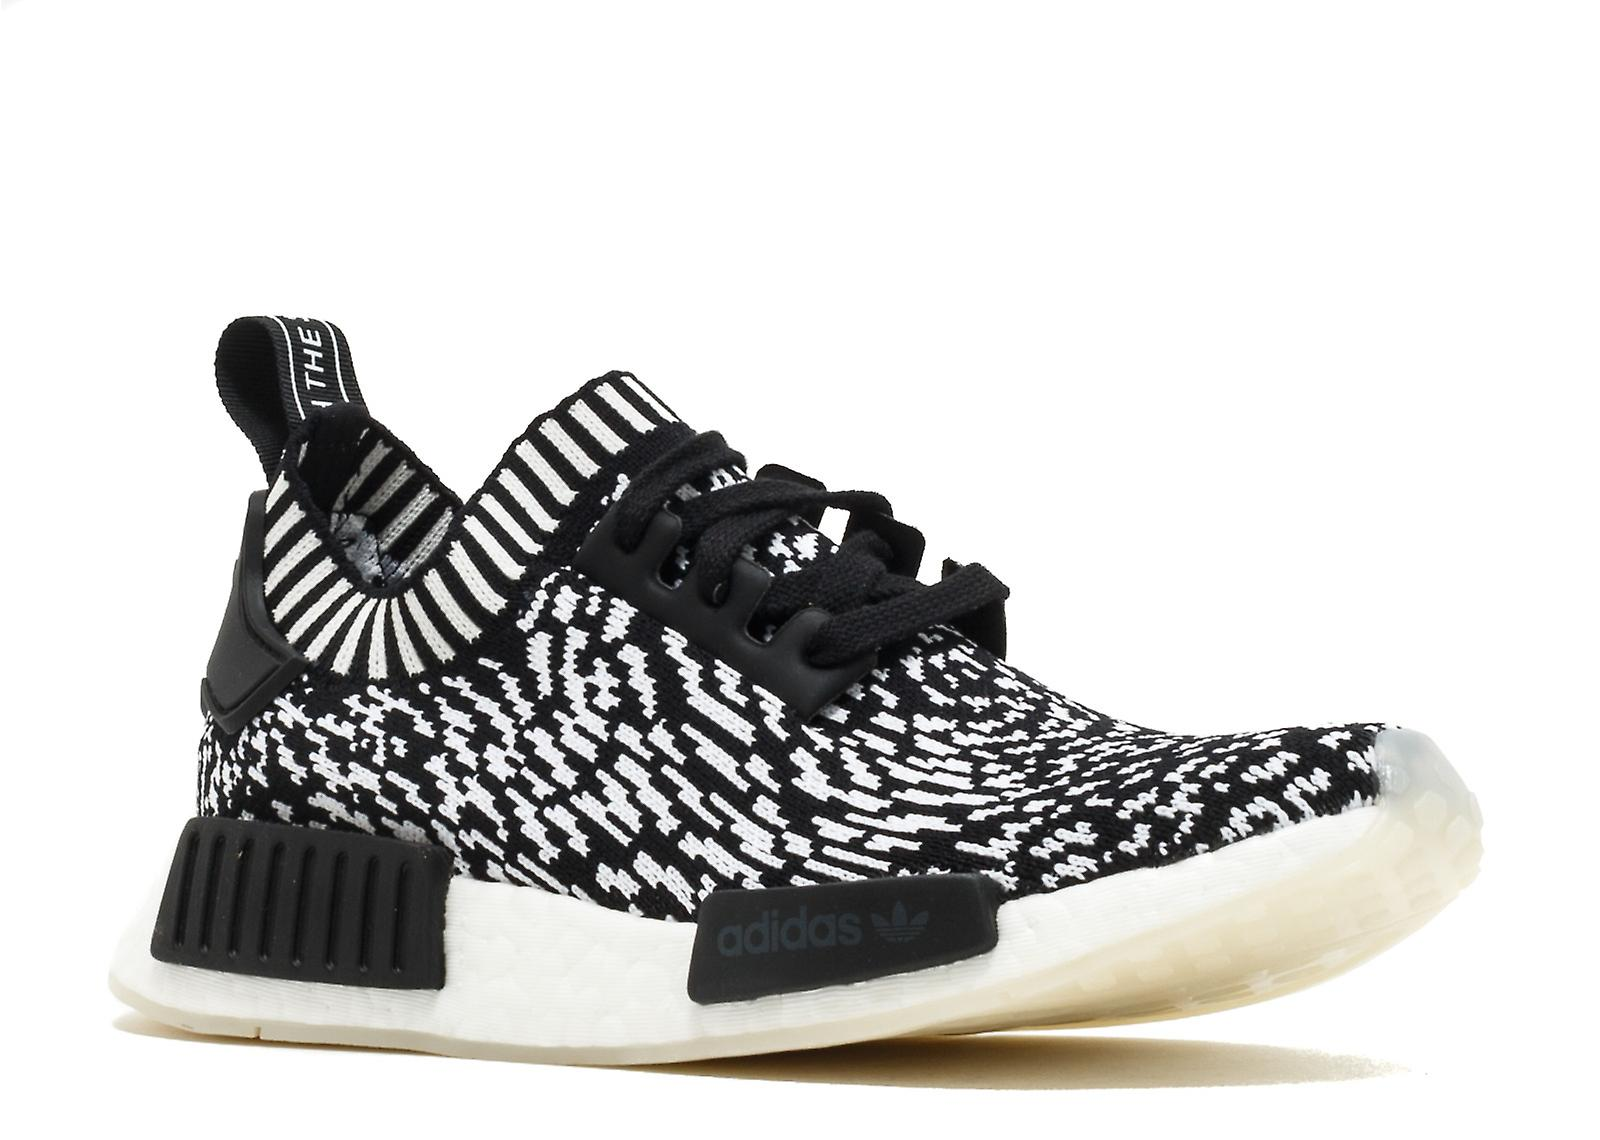 Nmd R1 Pk 'Zebra' - By3013 - Shoes